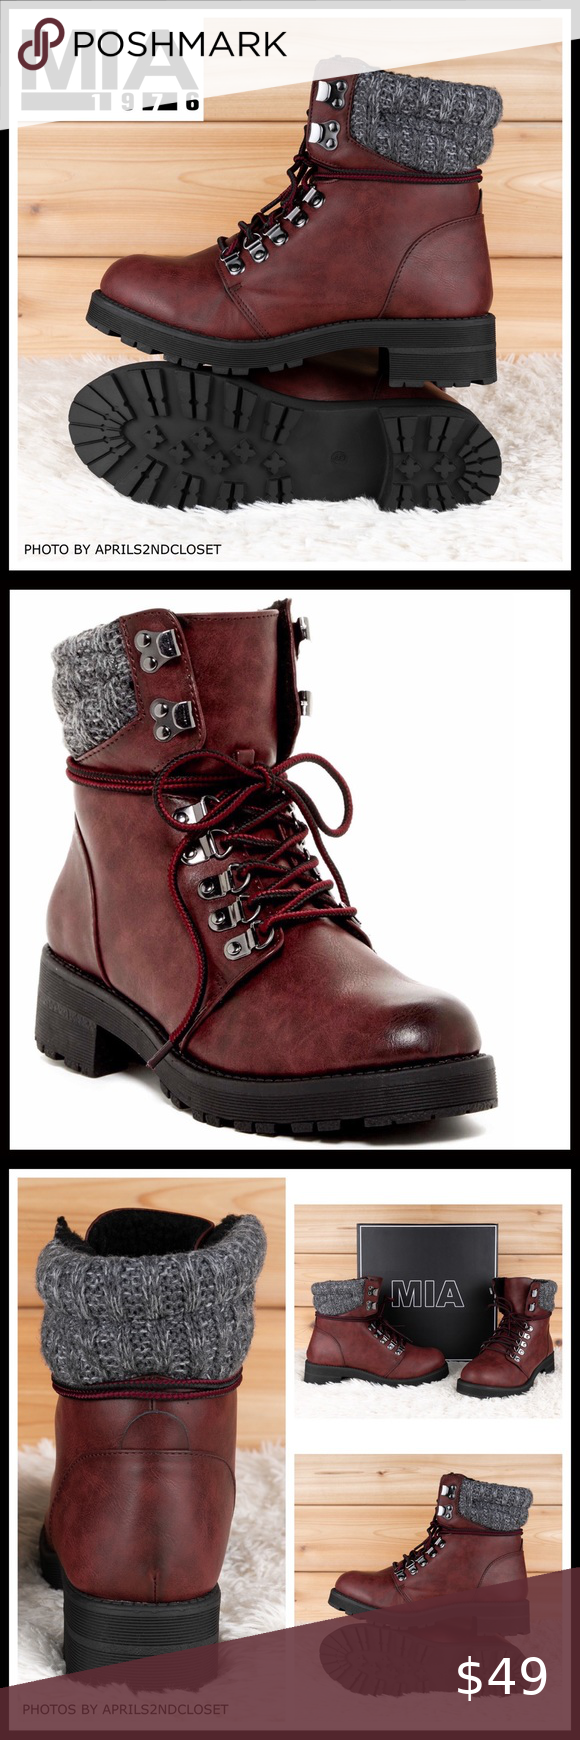 ANKLE BOOTIES LACE UP HIKER COMBAT MOTO BOOTS A3C